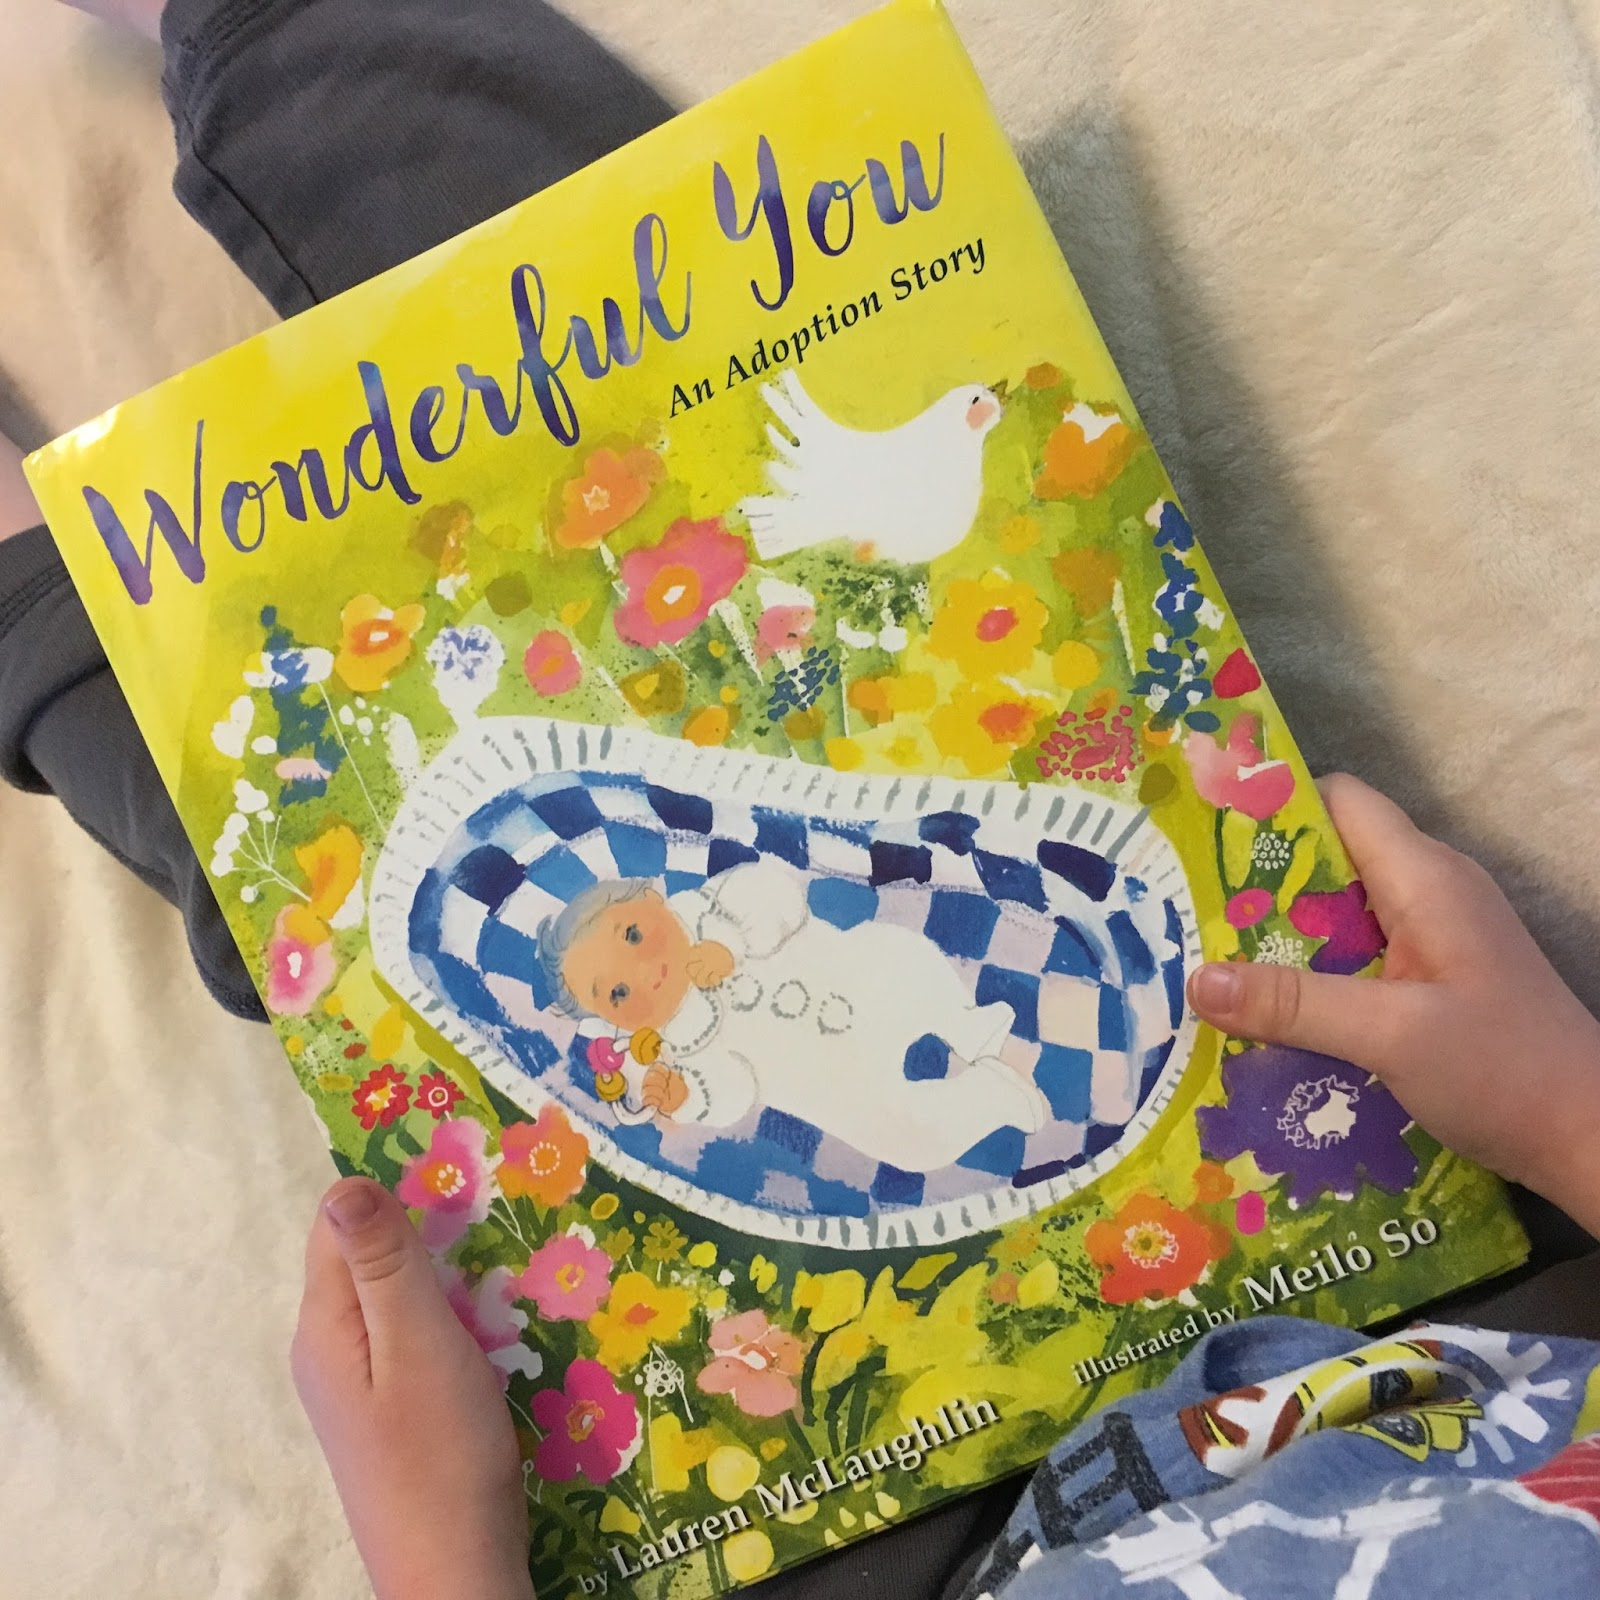 Let's Talk About This Wonderful Book Called, Wonderful You By Lauren  Mclaughlin This Book Is Own Voices, As The Author, Lauren Mclaughlin, As  An Adoptive